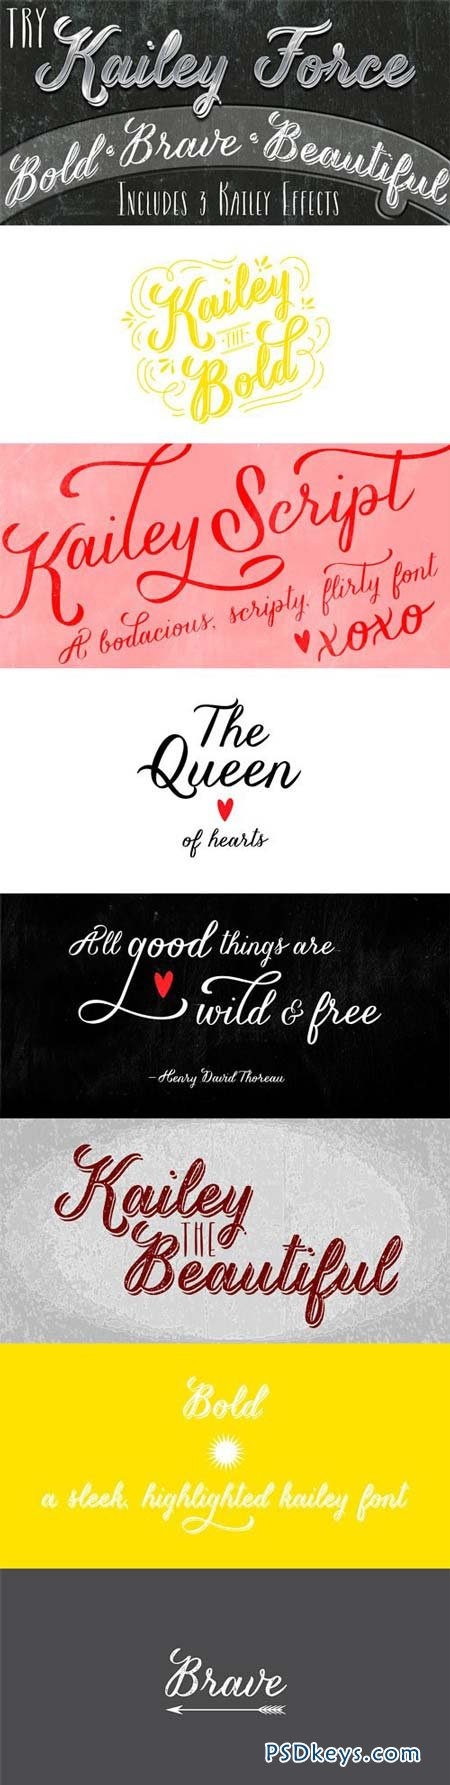 Kailey & Kailey Force Font Family - 4 Fonts for $110